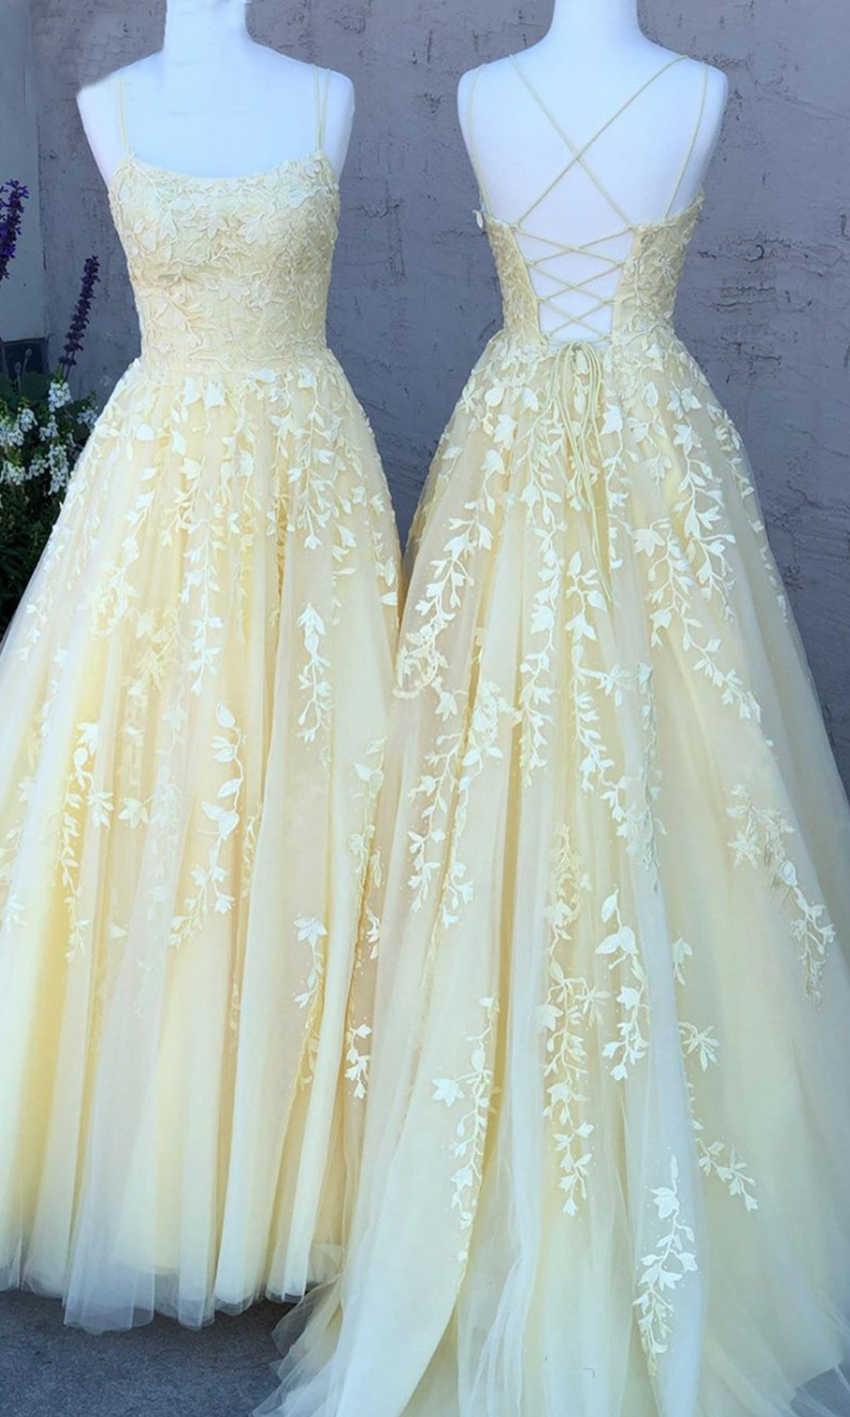 Light Yellow Prom Dresses Strings with Straps KSP10 - £10.10